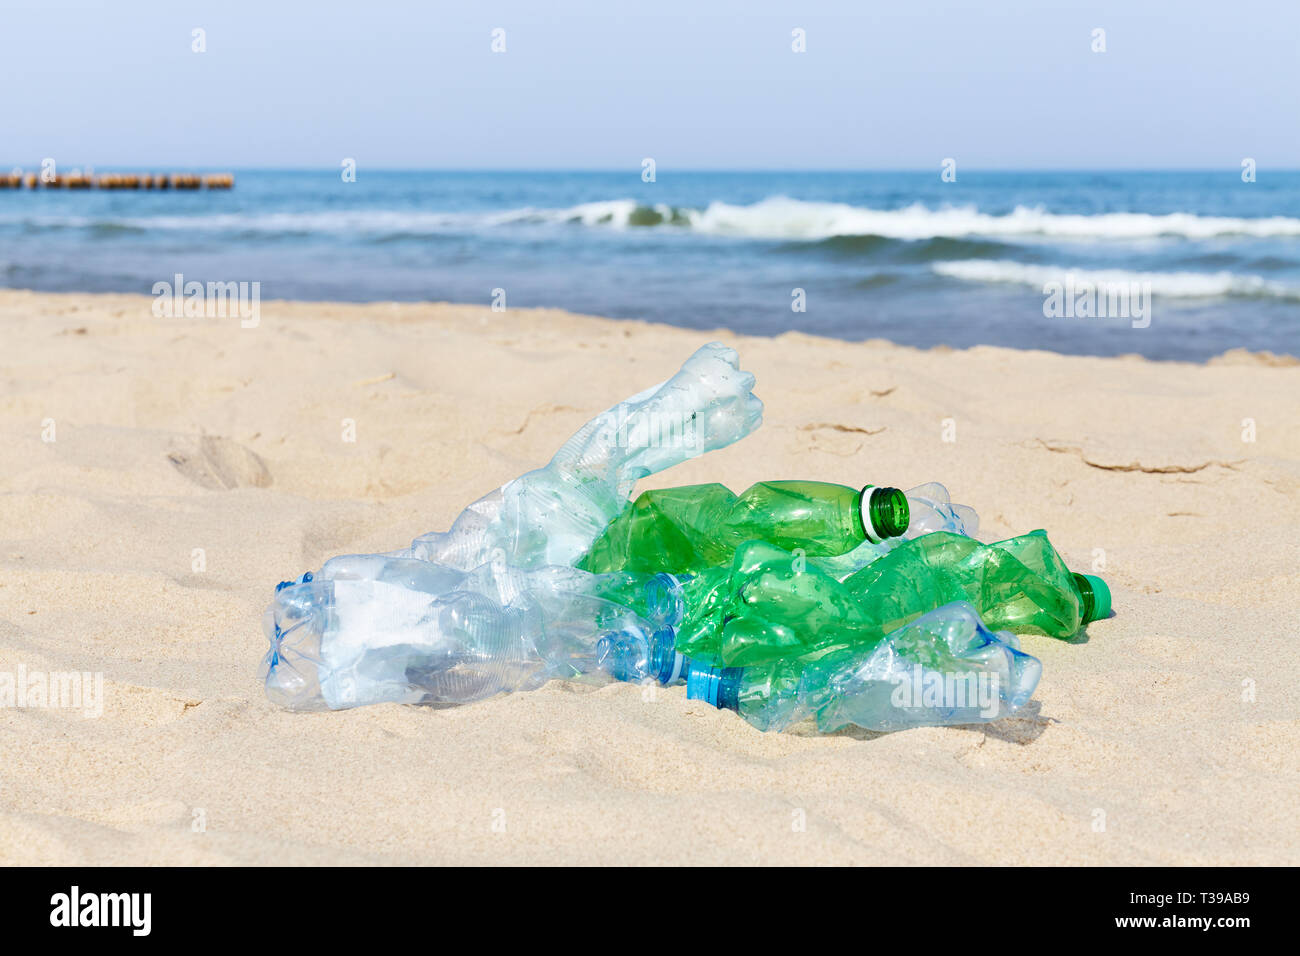 Used plastic bottles on a beach, selective focus. - Stock Image